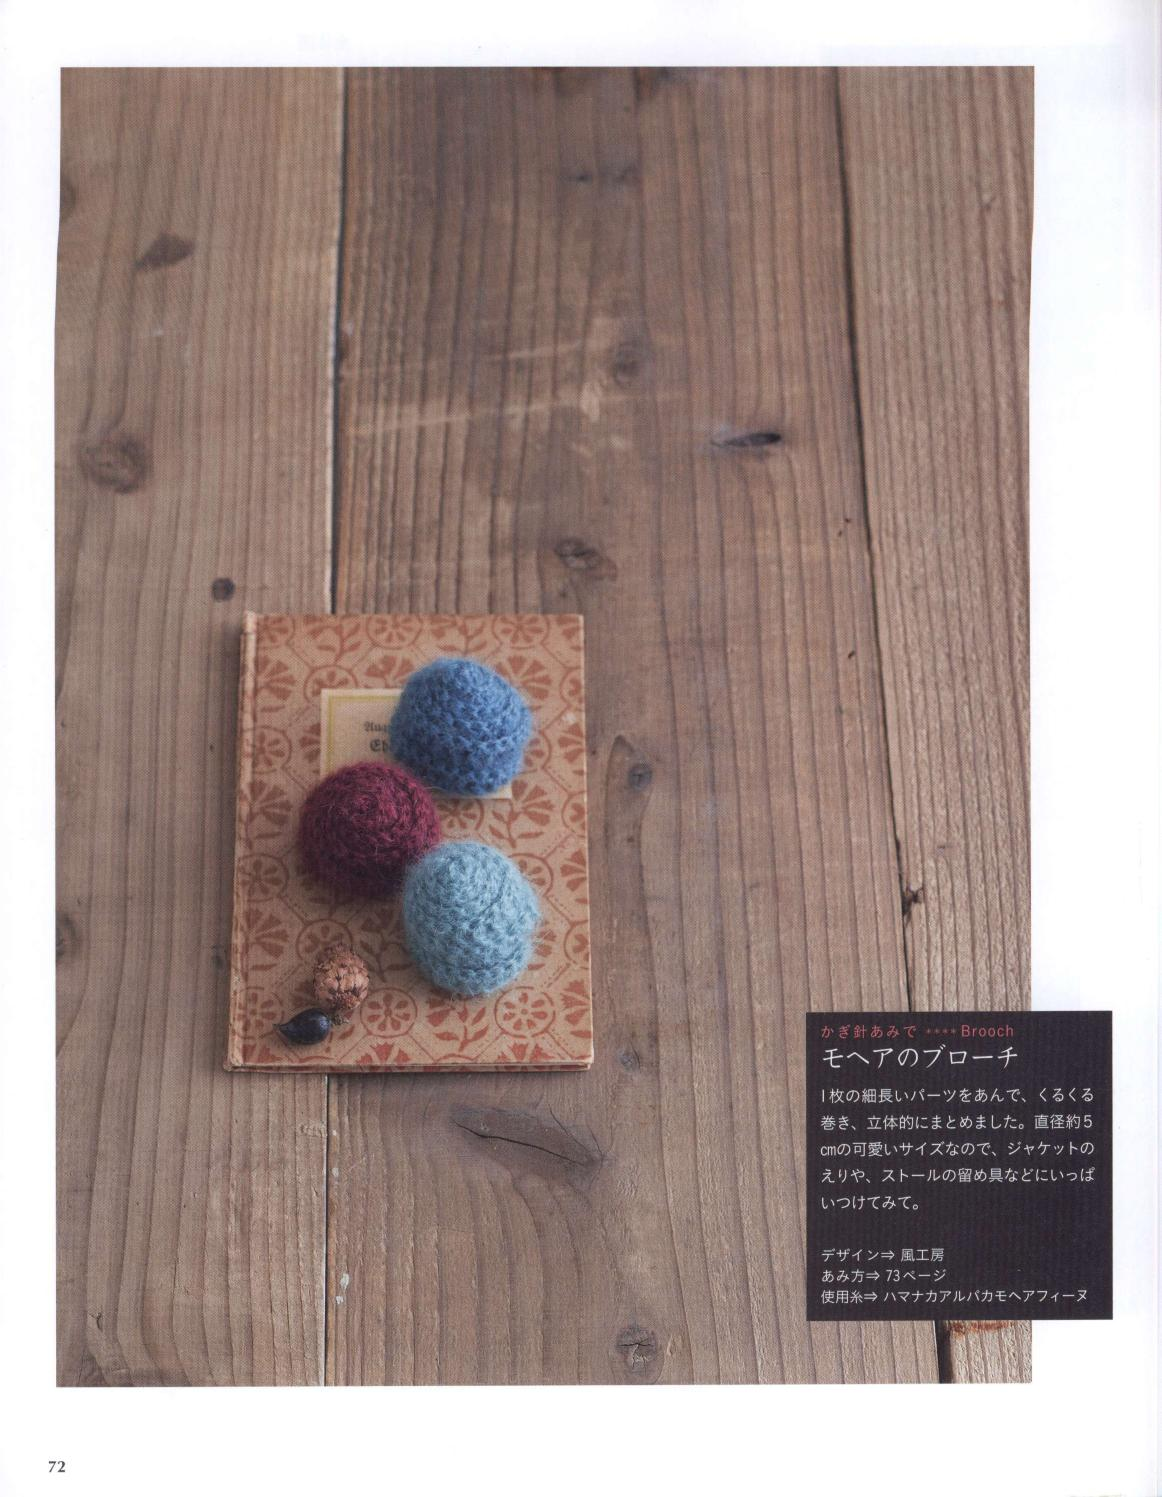 Simple and pretty crochet page 70